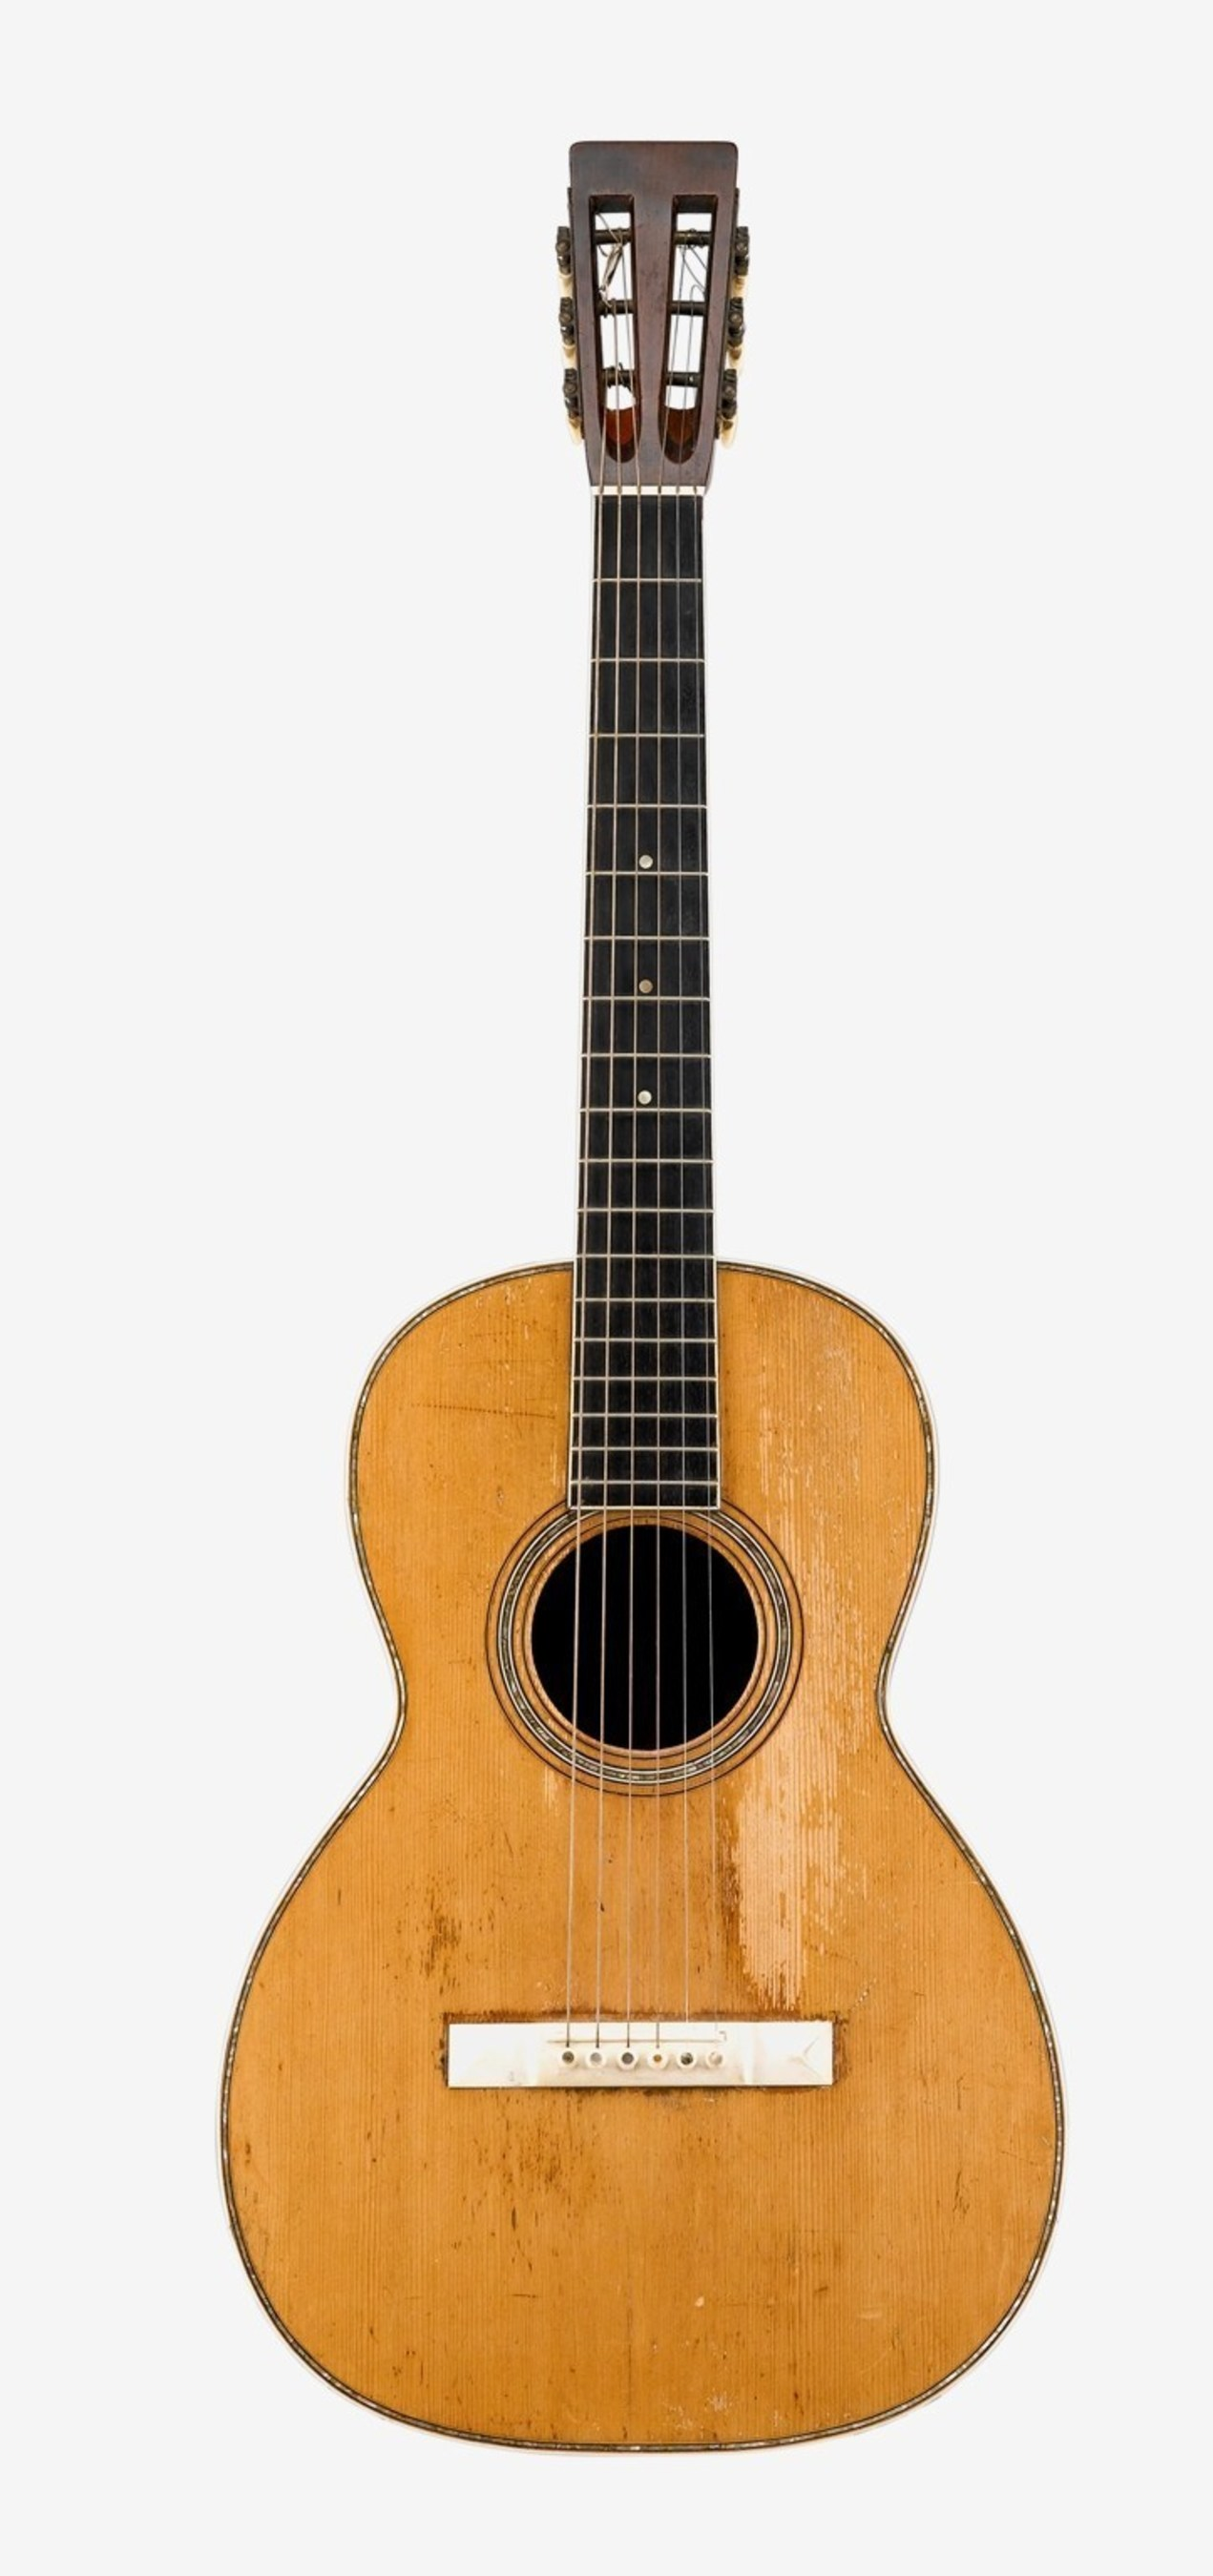 C.F. Martin Guitar, Style 0-40, c.1880, used in performances and recordings by Joan Baez 1966-68. Sold for $12,500.